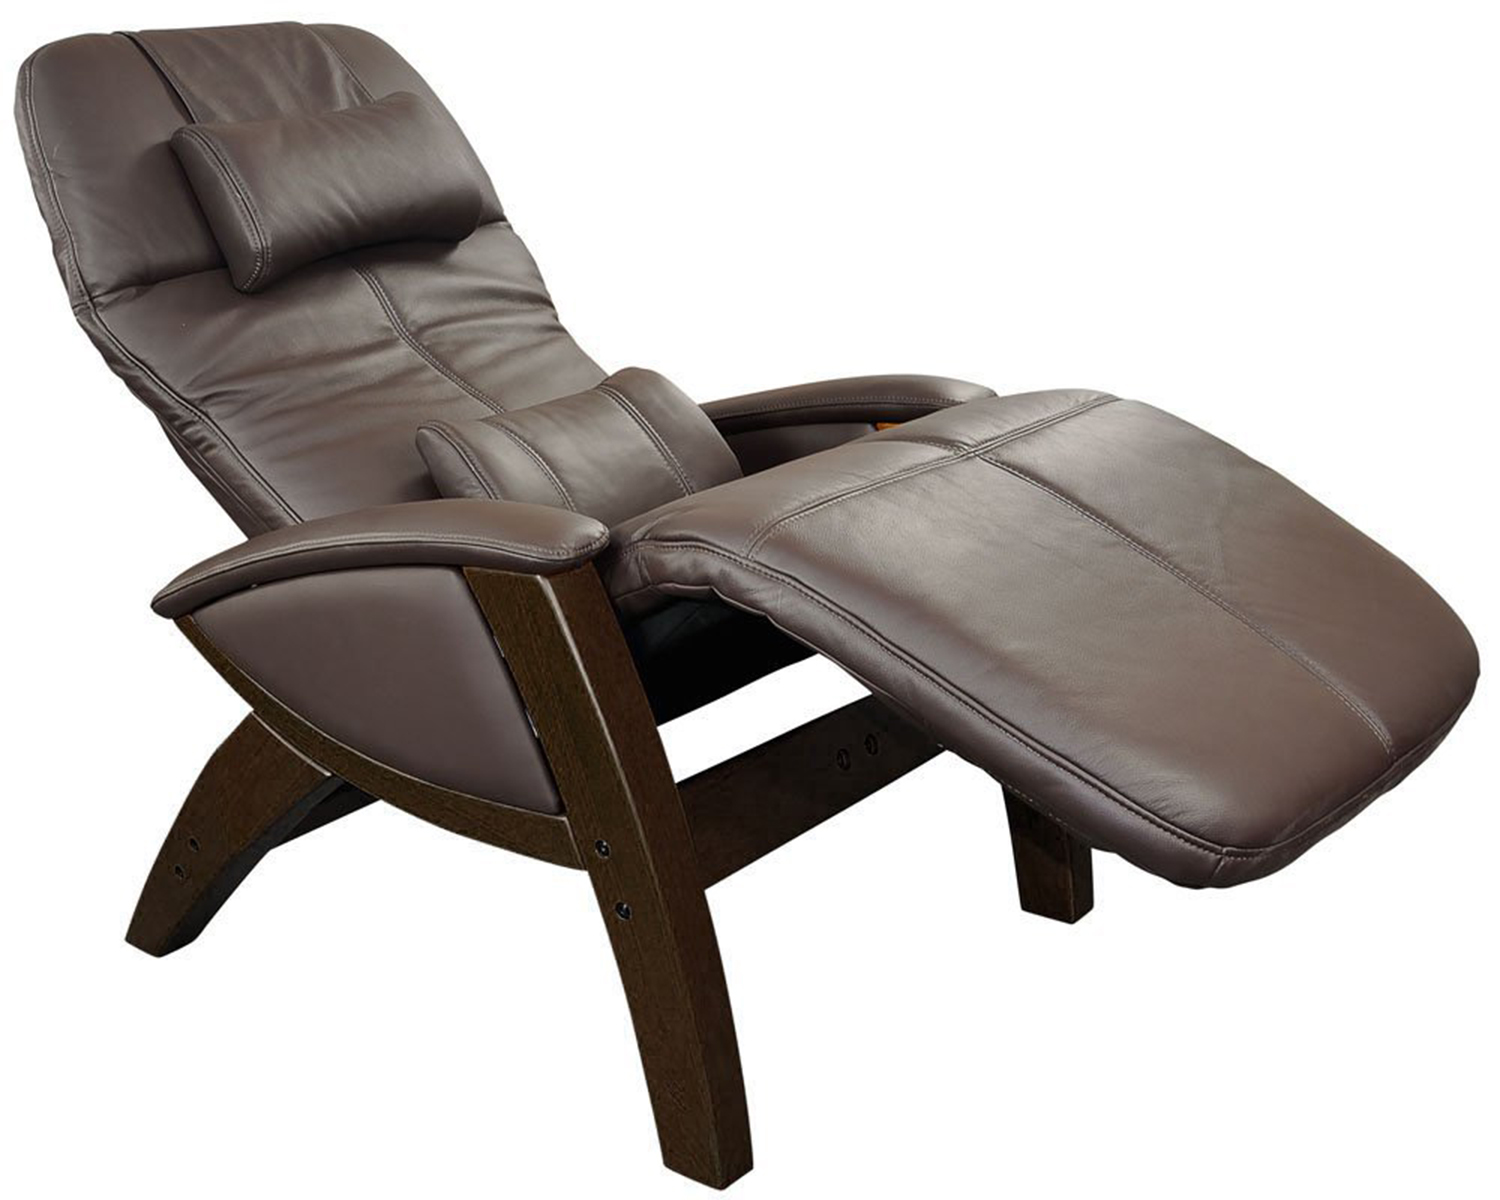 chocolate leather svago sv400 lusso chair zero gravity recliner